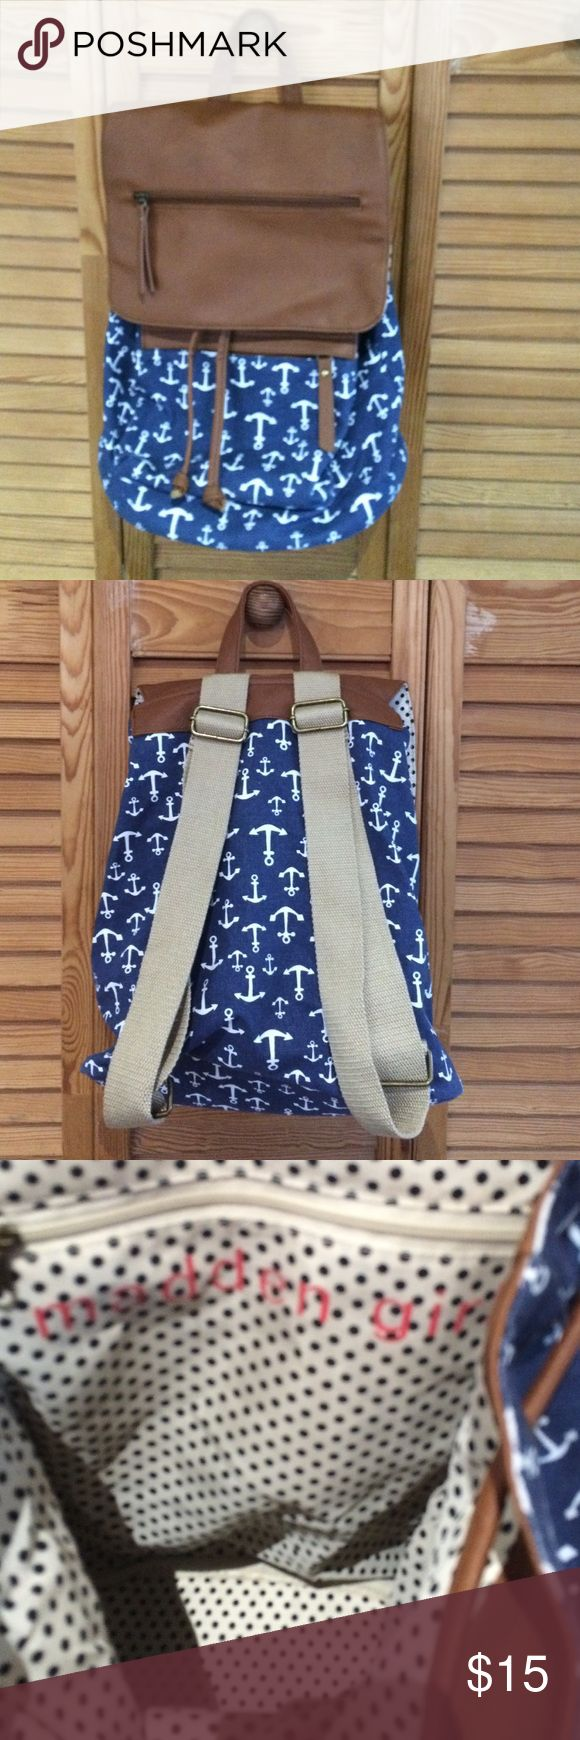 """Cute anchor backpack Excellent condition blue/white anchor print backpack with faux brown leather flap. Very clean inside. Used 1x. Approx 10""""w X 15""""h Madden Girl Bags Backpacks"""